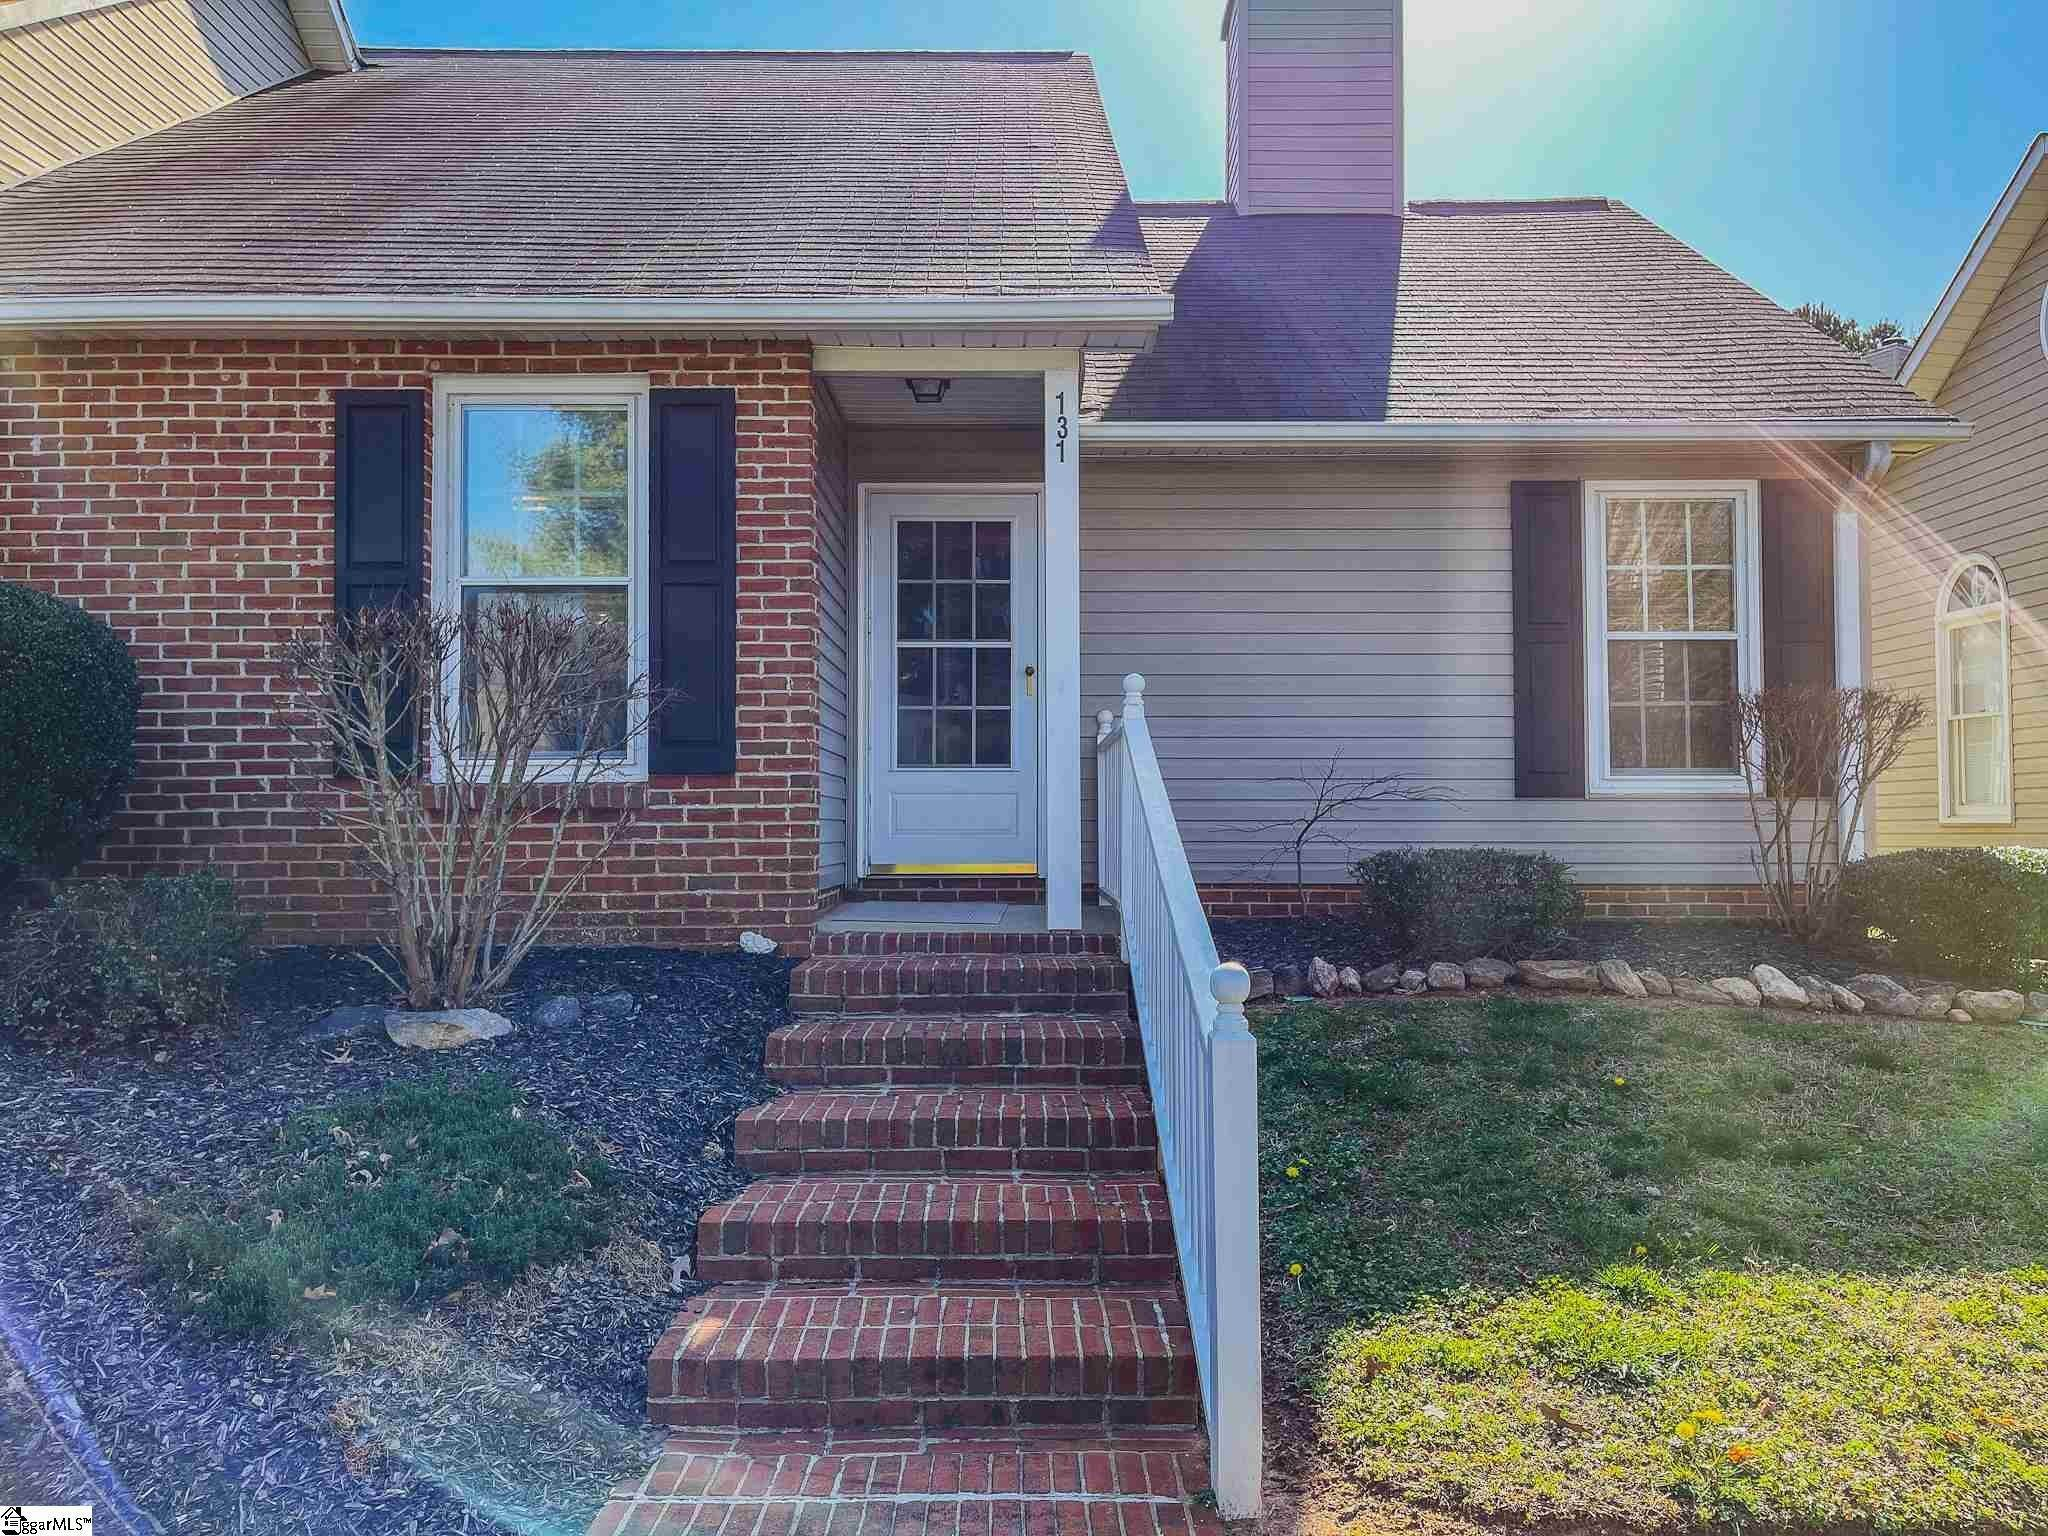 Condo / Townhouse for Sale at Mauldin, SC 29662